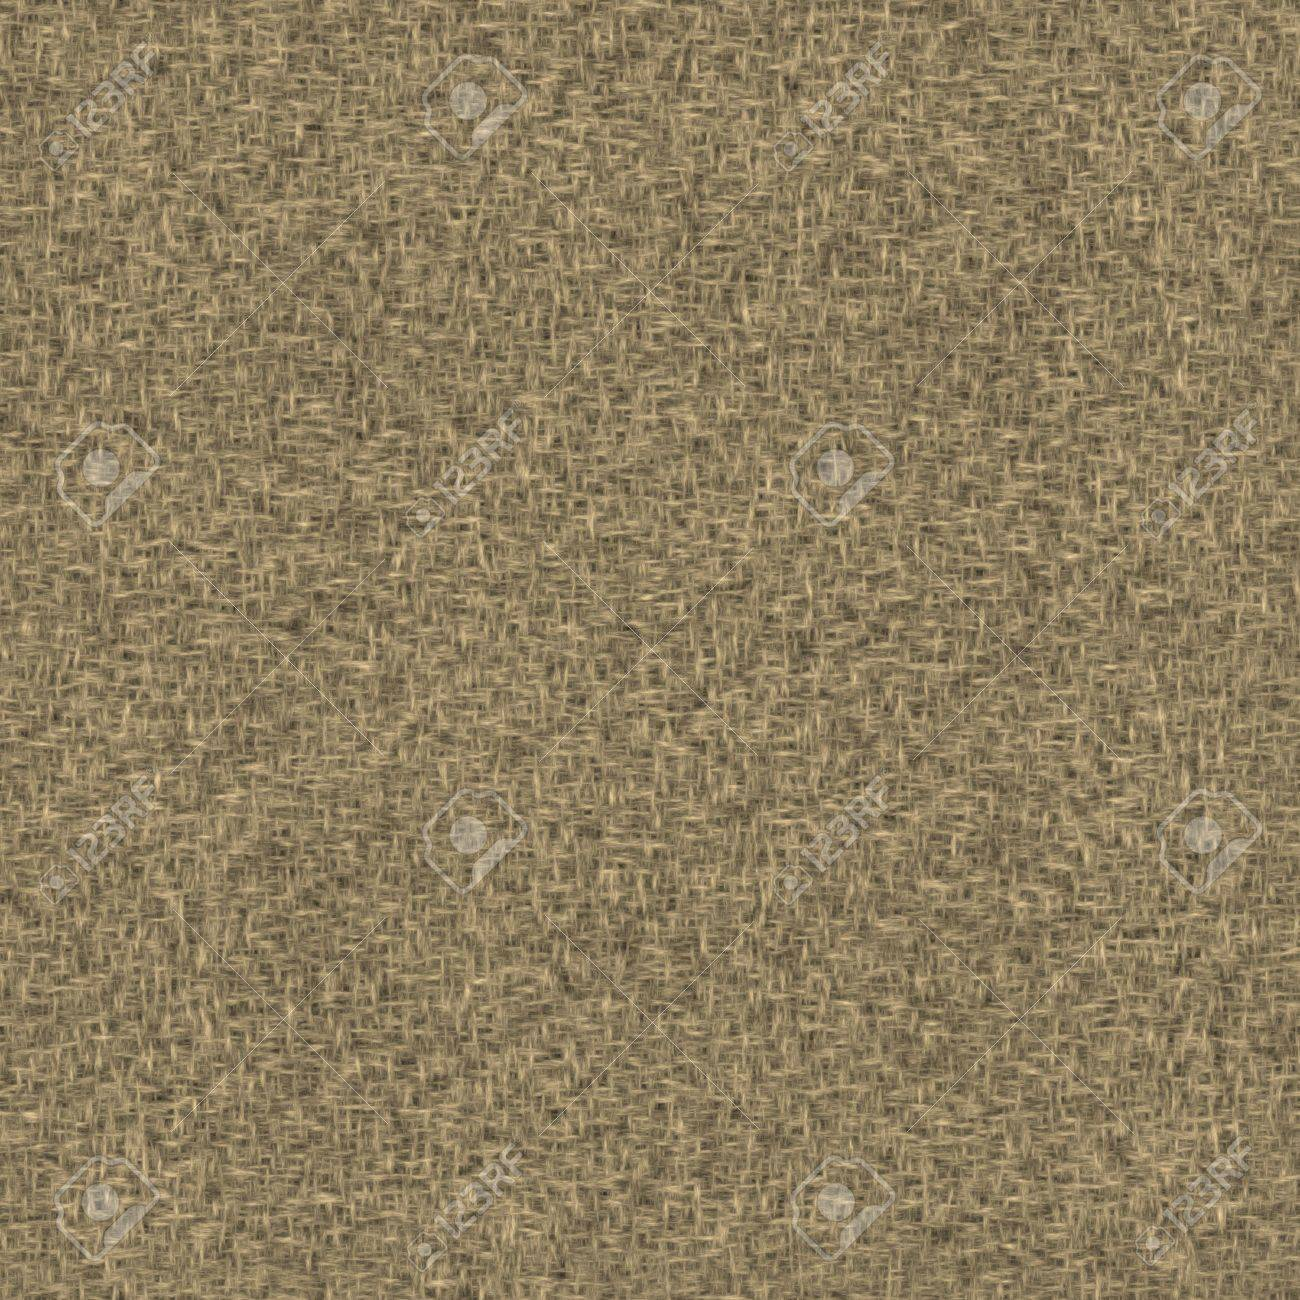 sack cloth canvas background, tiles seamless as a pattern Stock Photo - 3905393